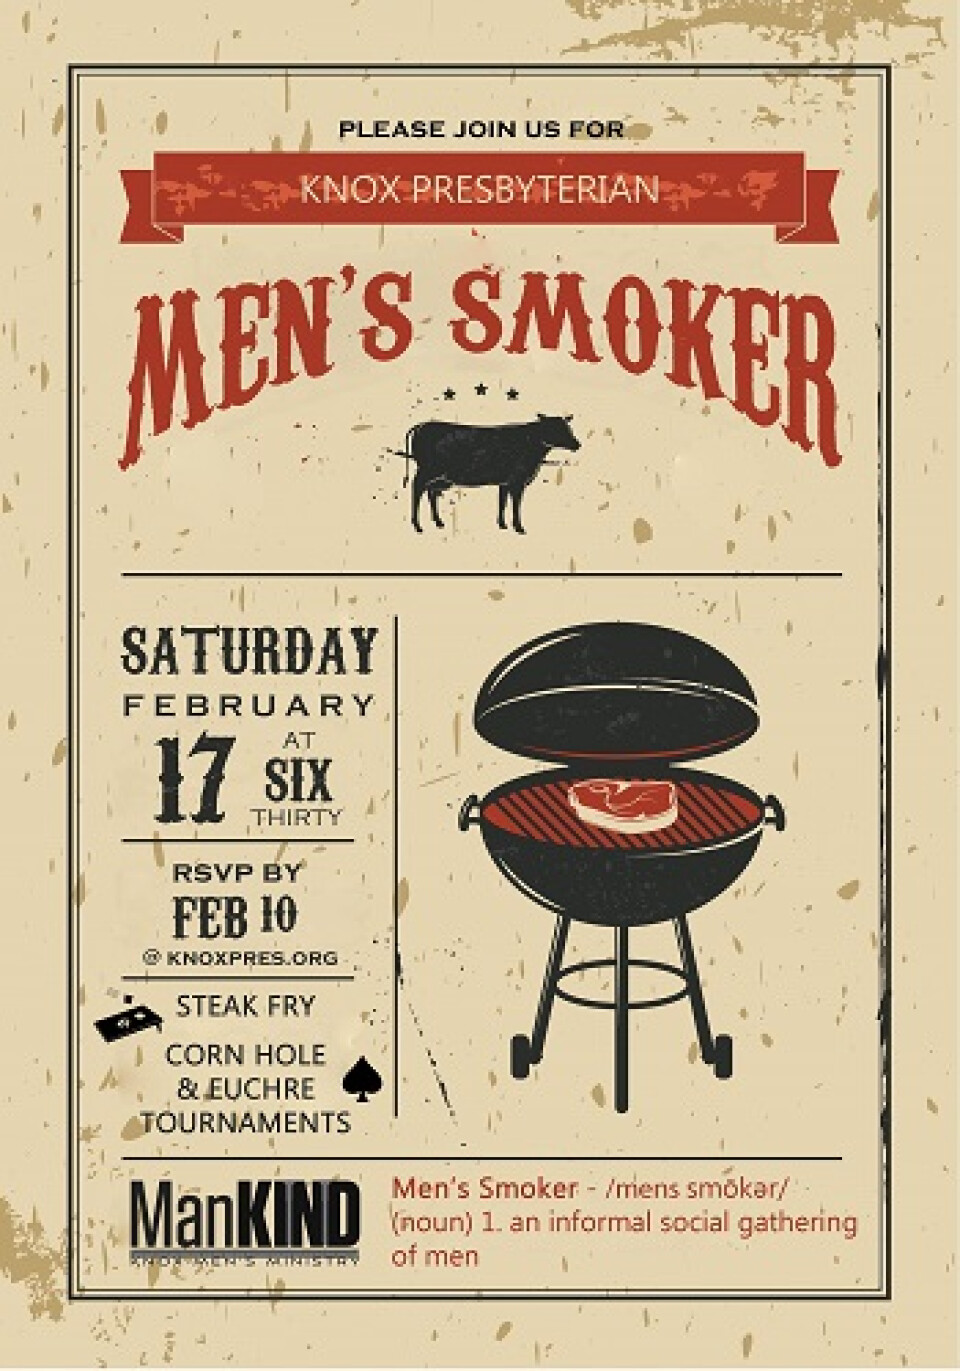 ManKIND - Smoker Event